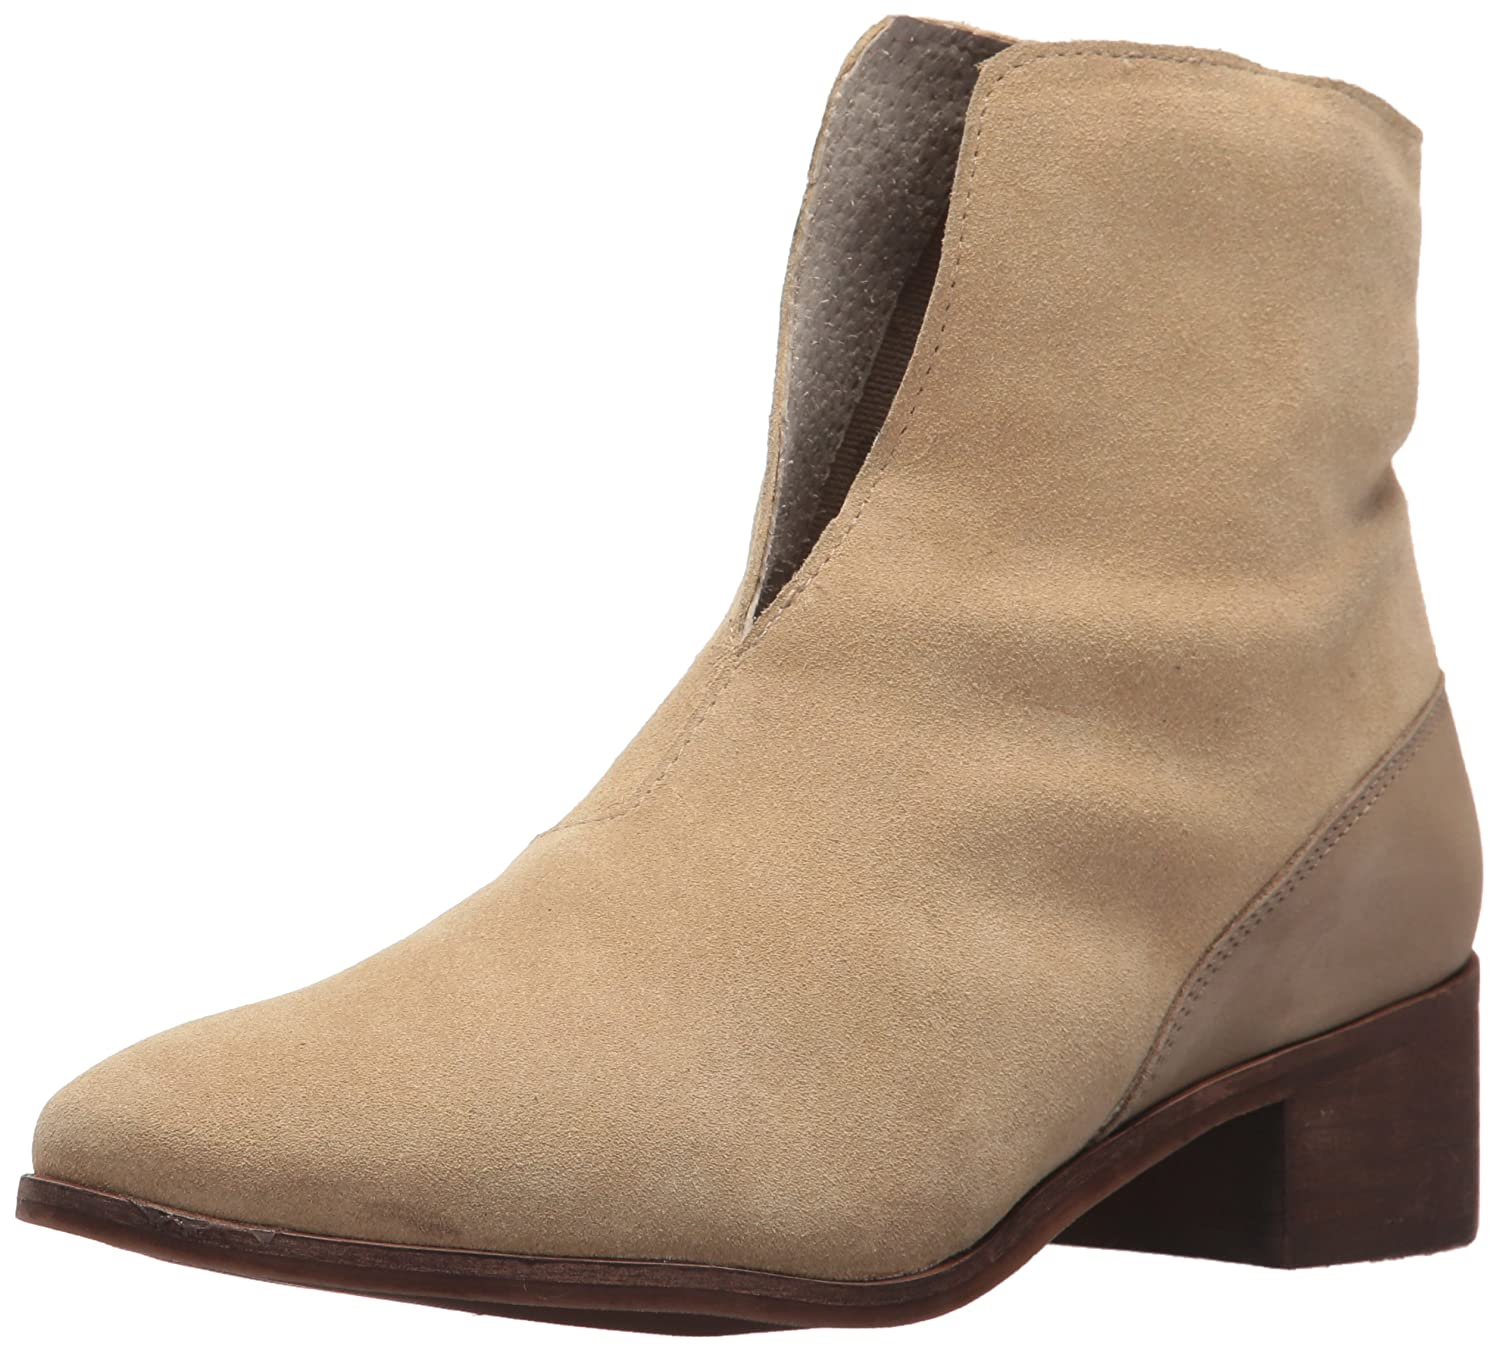 Coconuts by Matisse Women's Cecilia Ankle Boot B076BS9V34 9.5 B(M) US|Natural